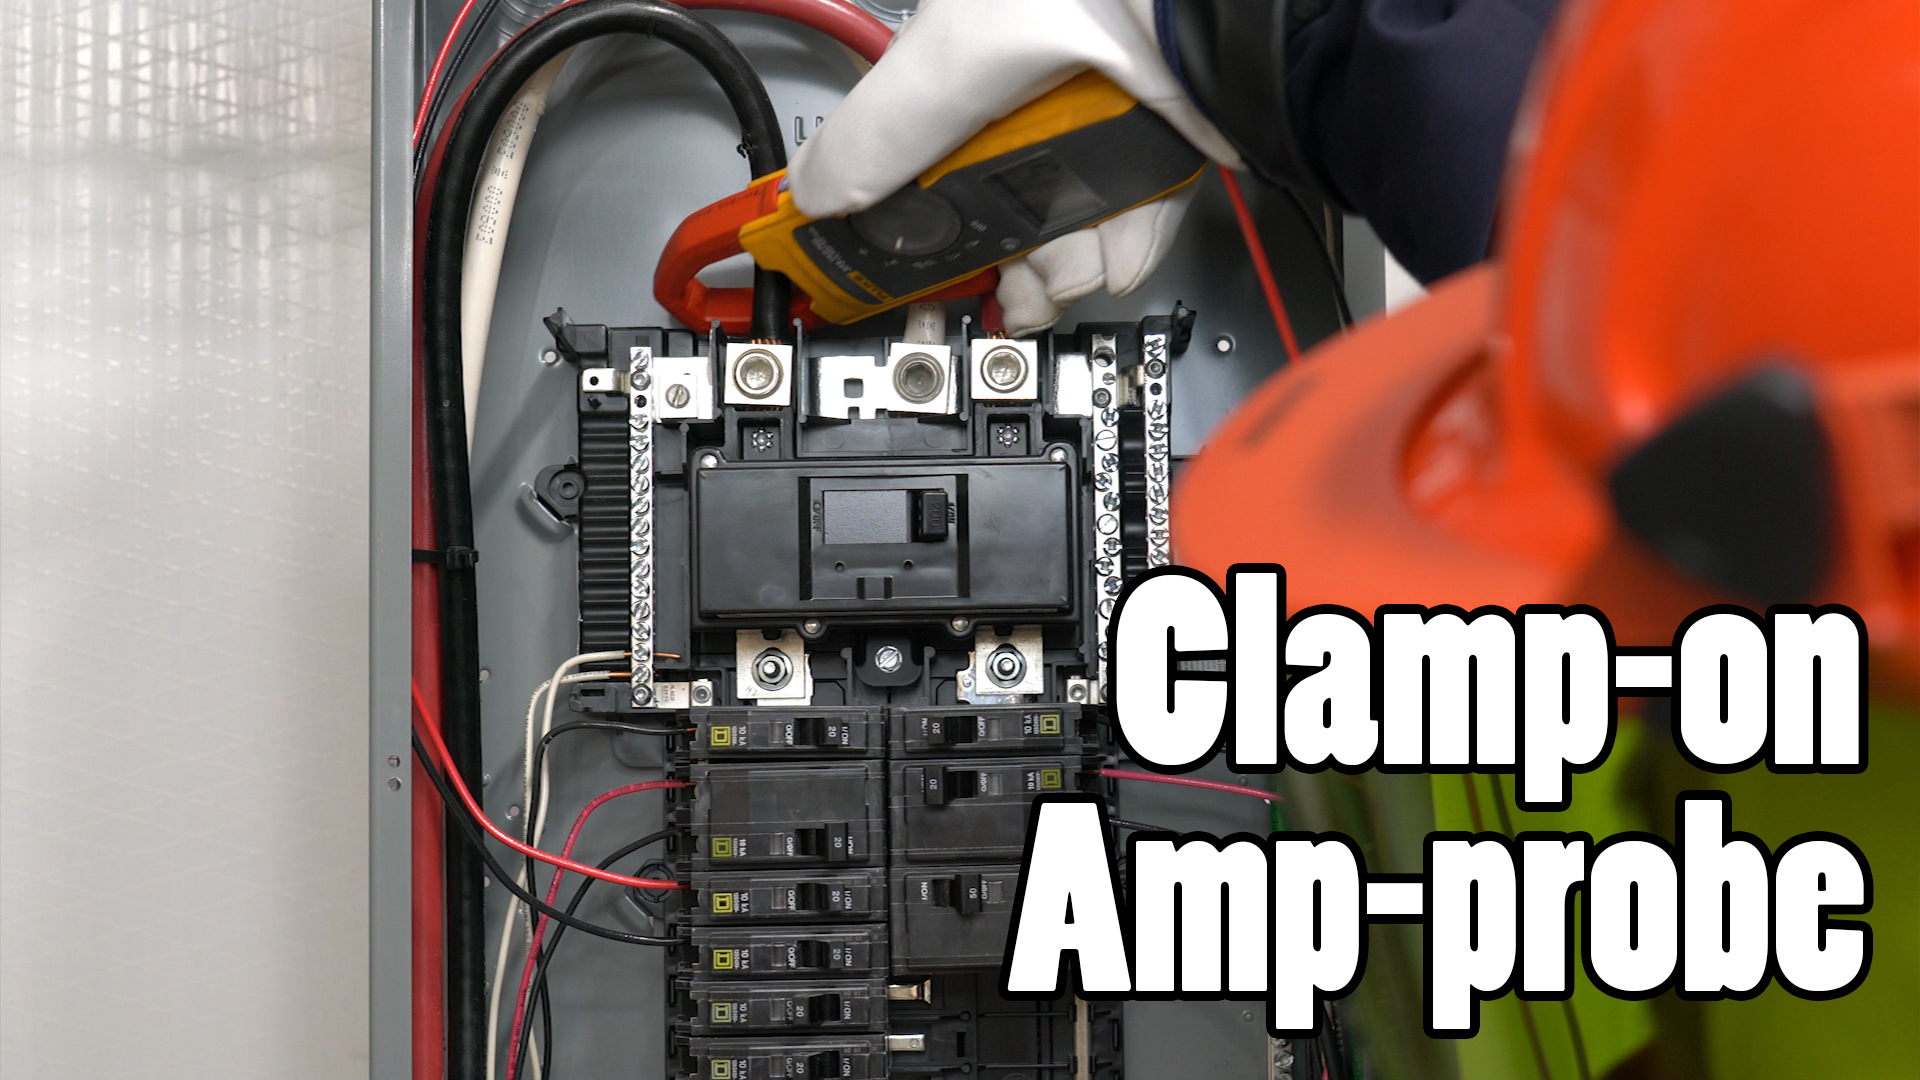 If you have larger wires than 1/0 THHN then you'll need to get your hands on a clamp-on ammeter.